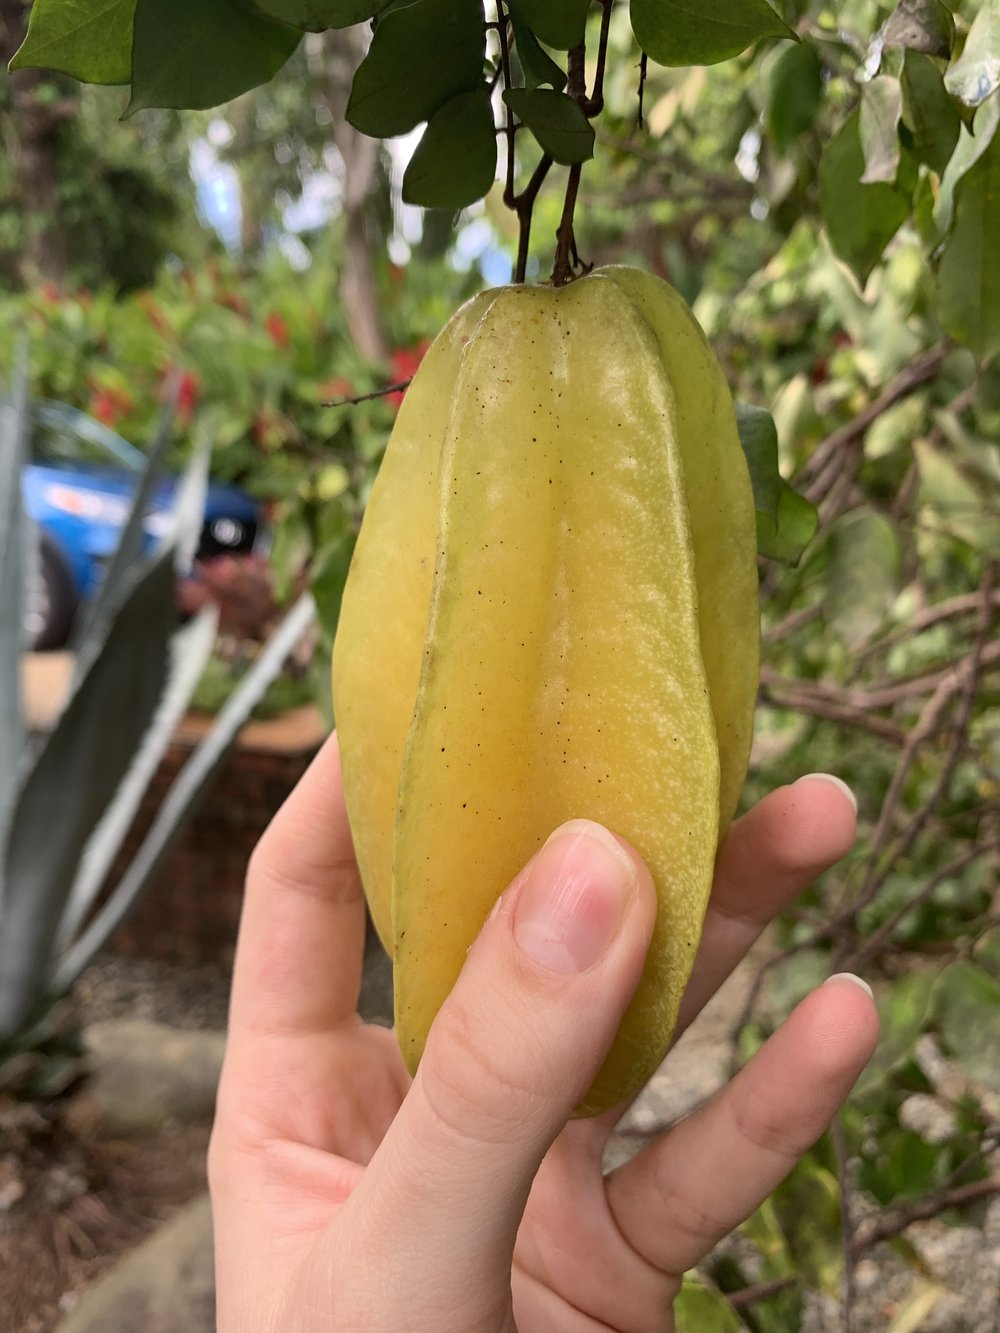 Checking to see how ripe a star fruit is.